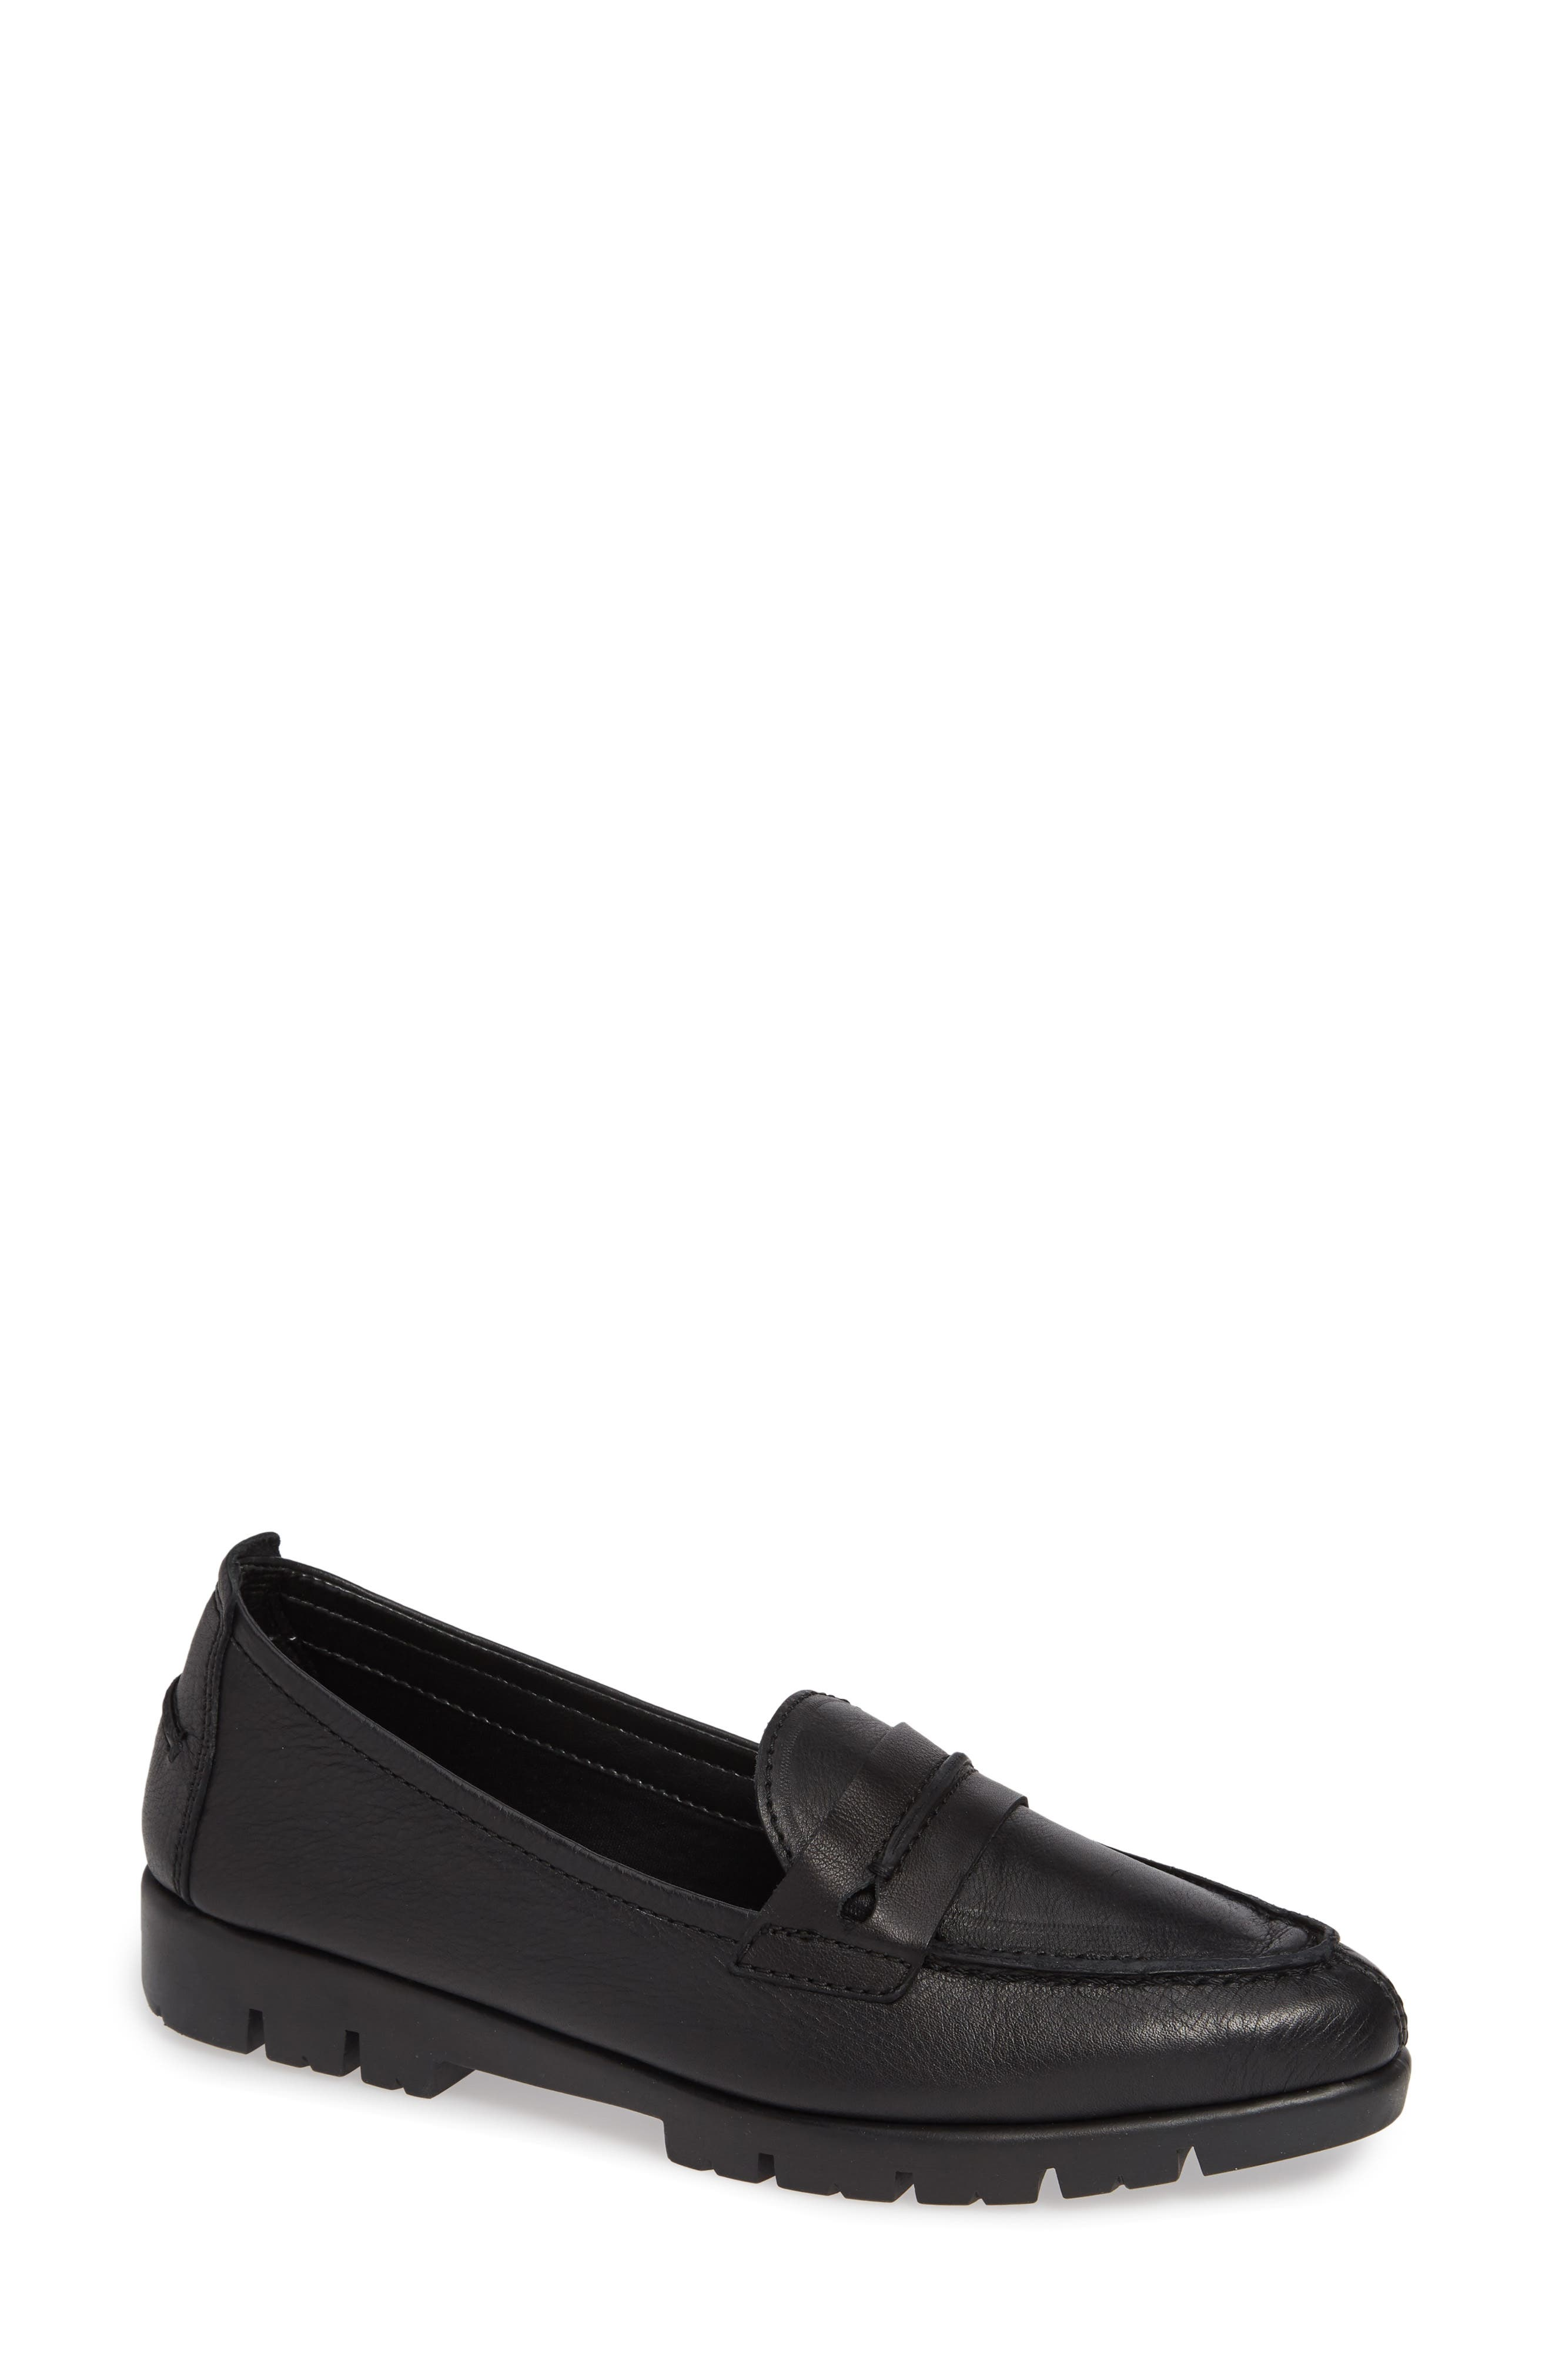 THE FLEXX Moc A Go Loafer, Main, color, BLACK LEATHER